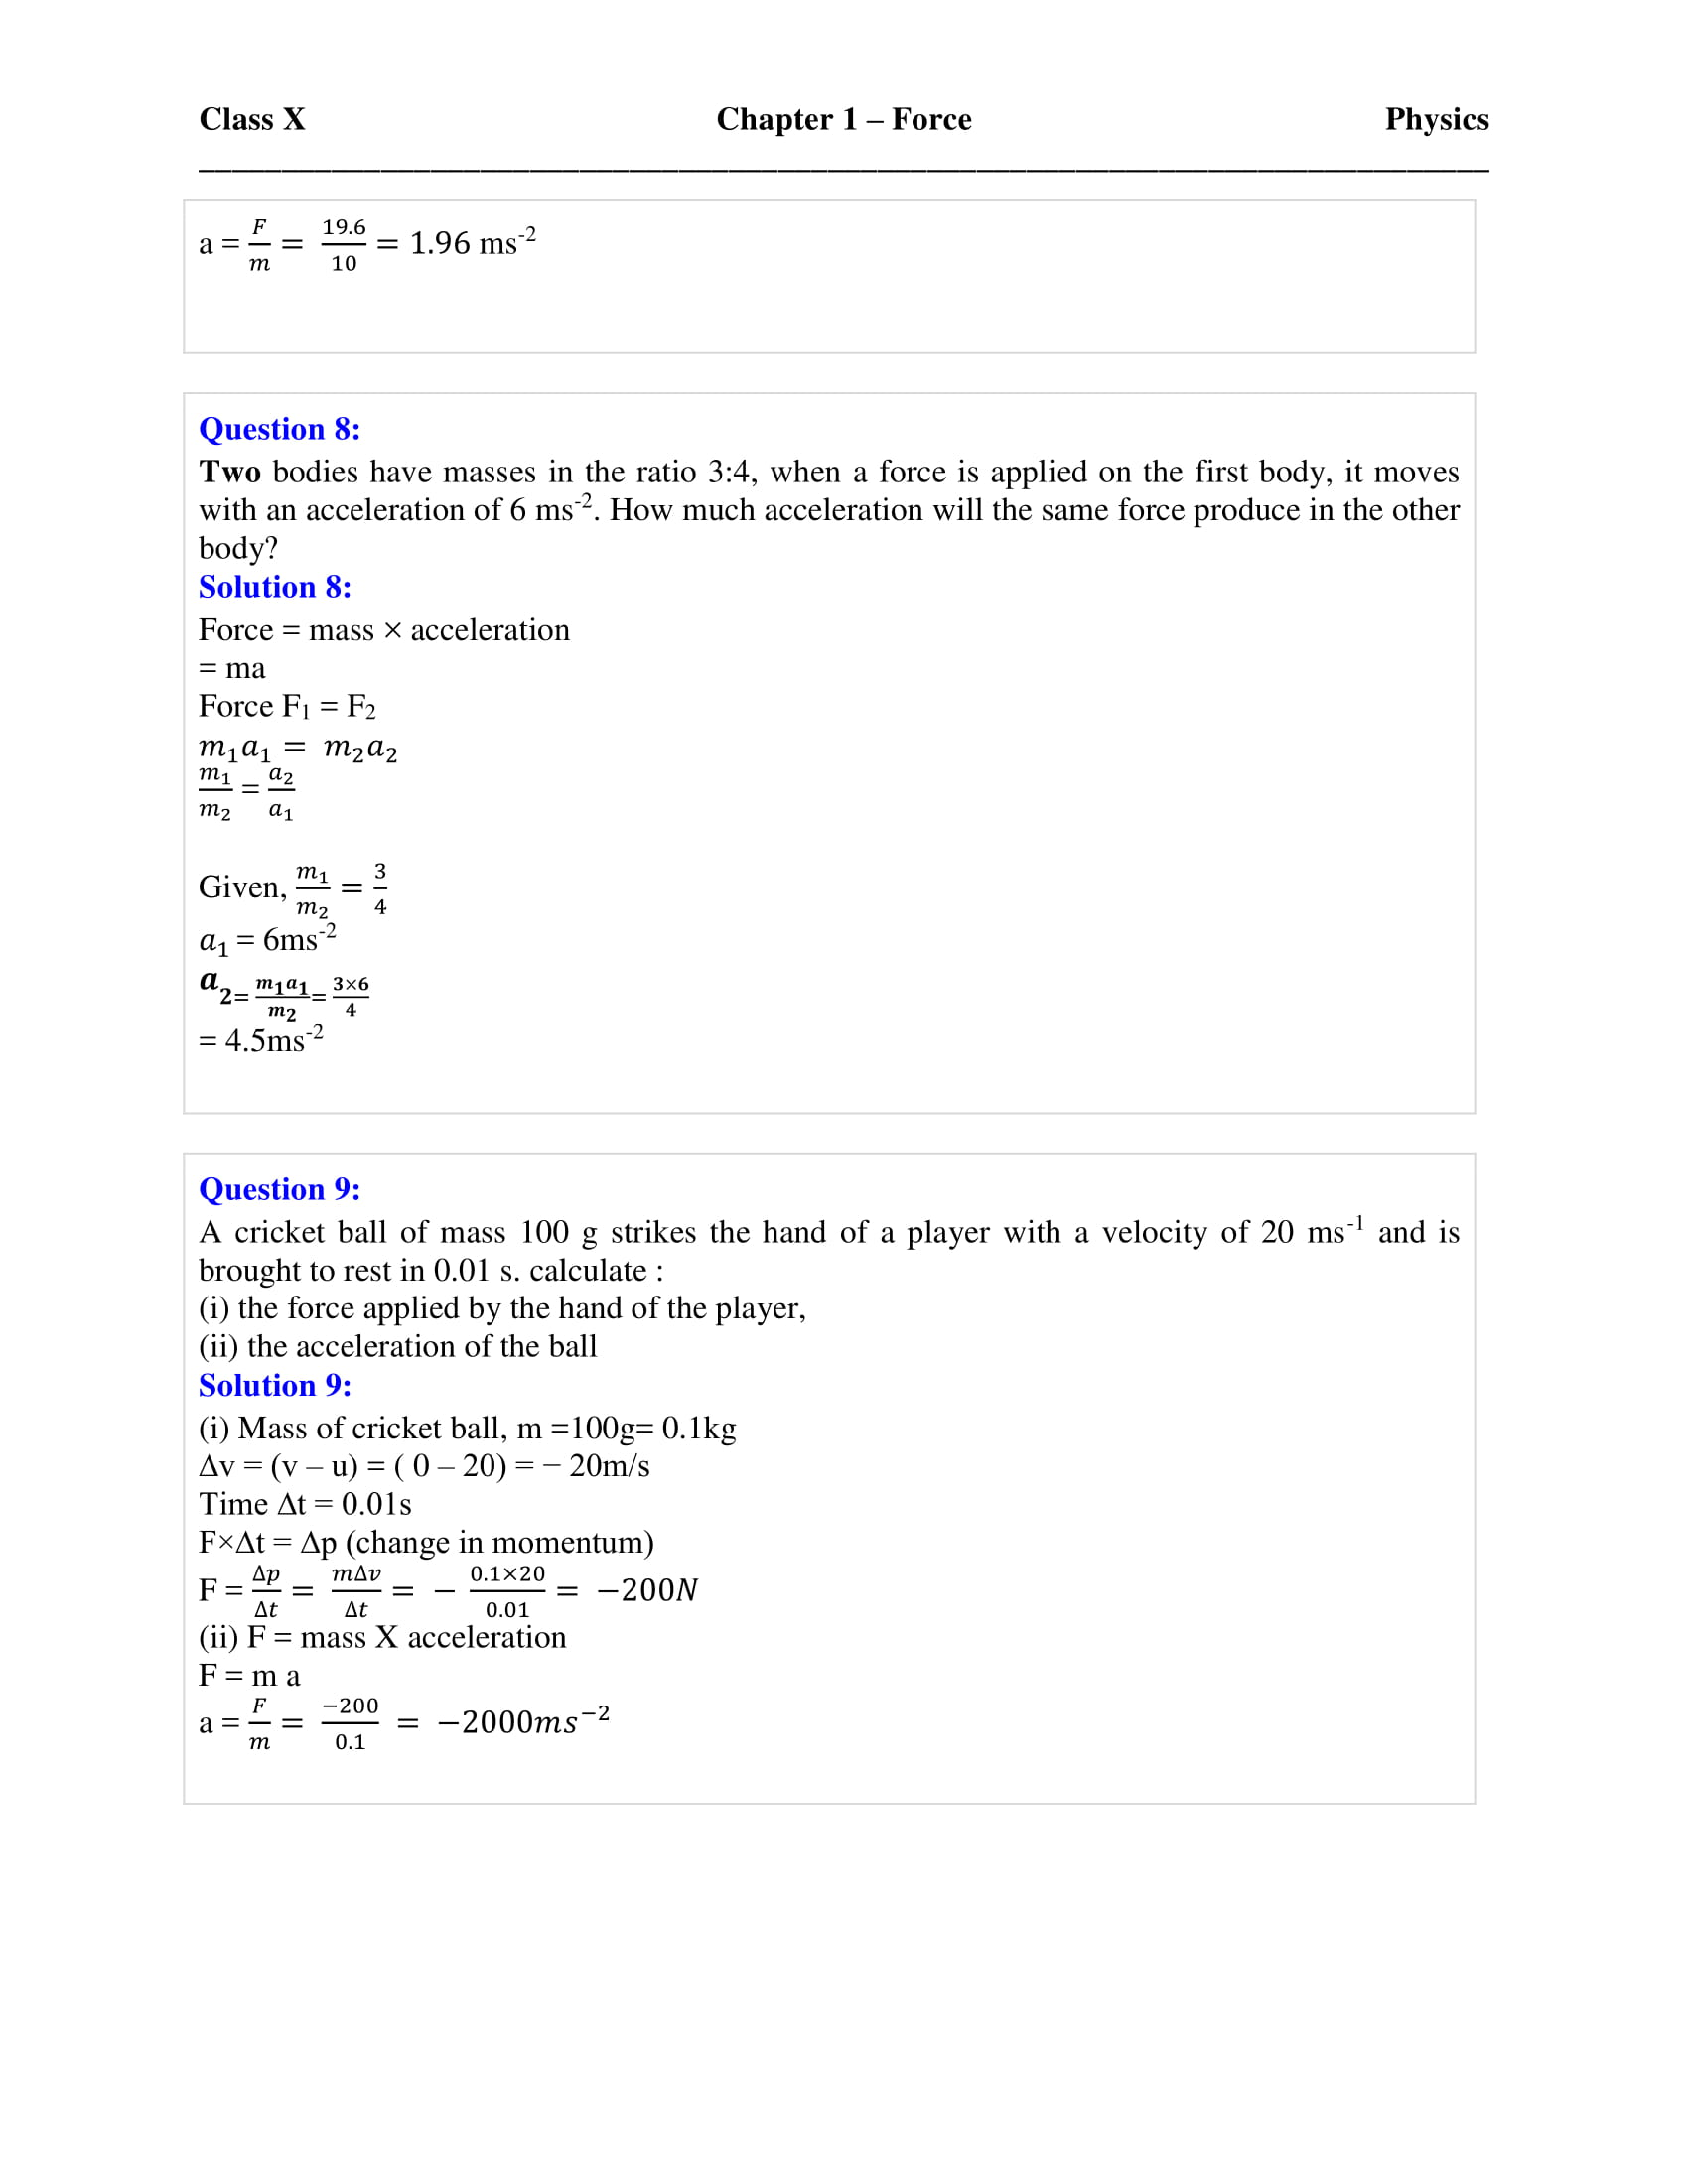 icse-selina-physics-solutions-class-10-chapter-1-force-12